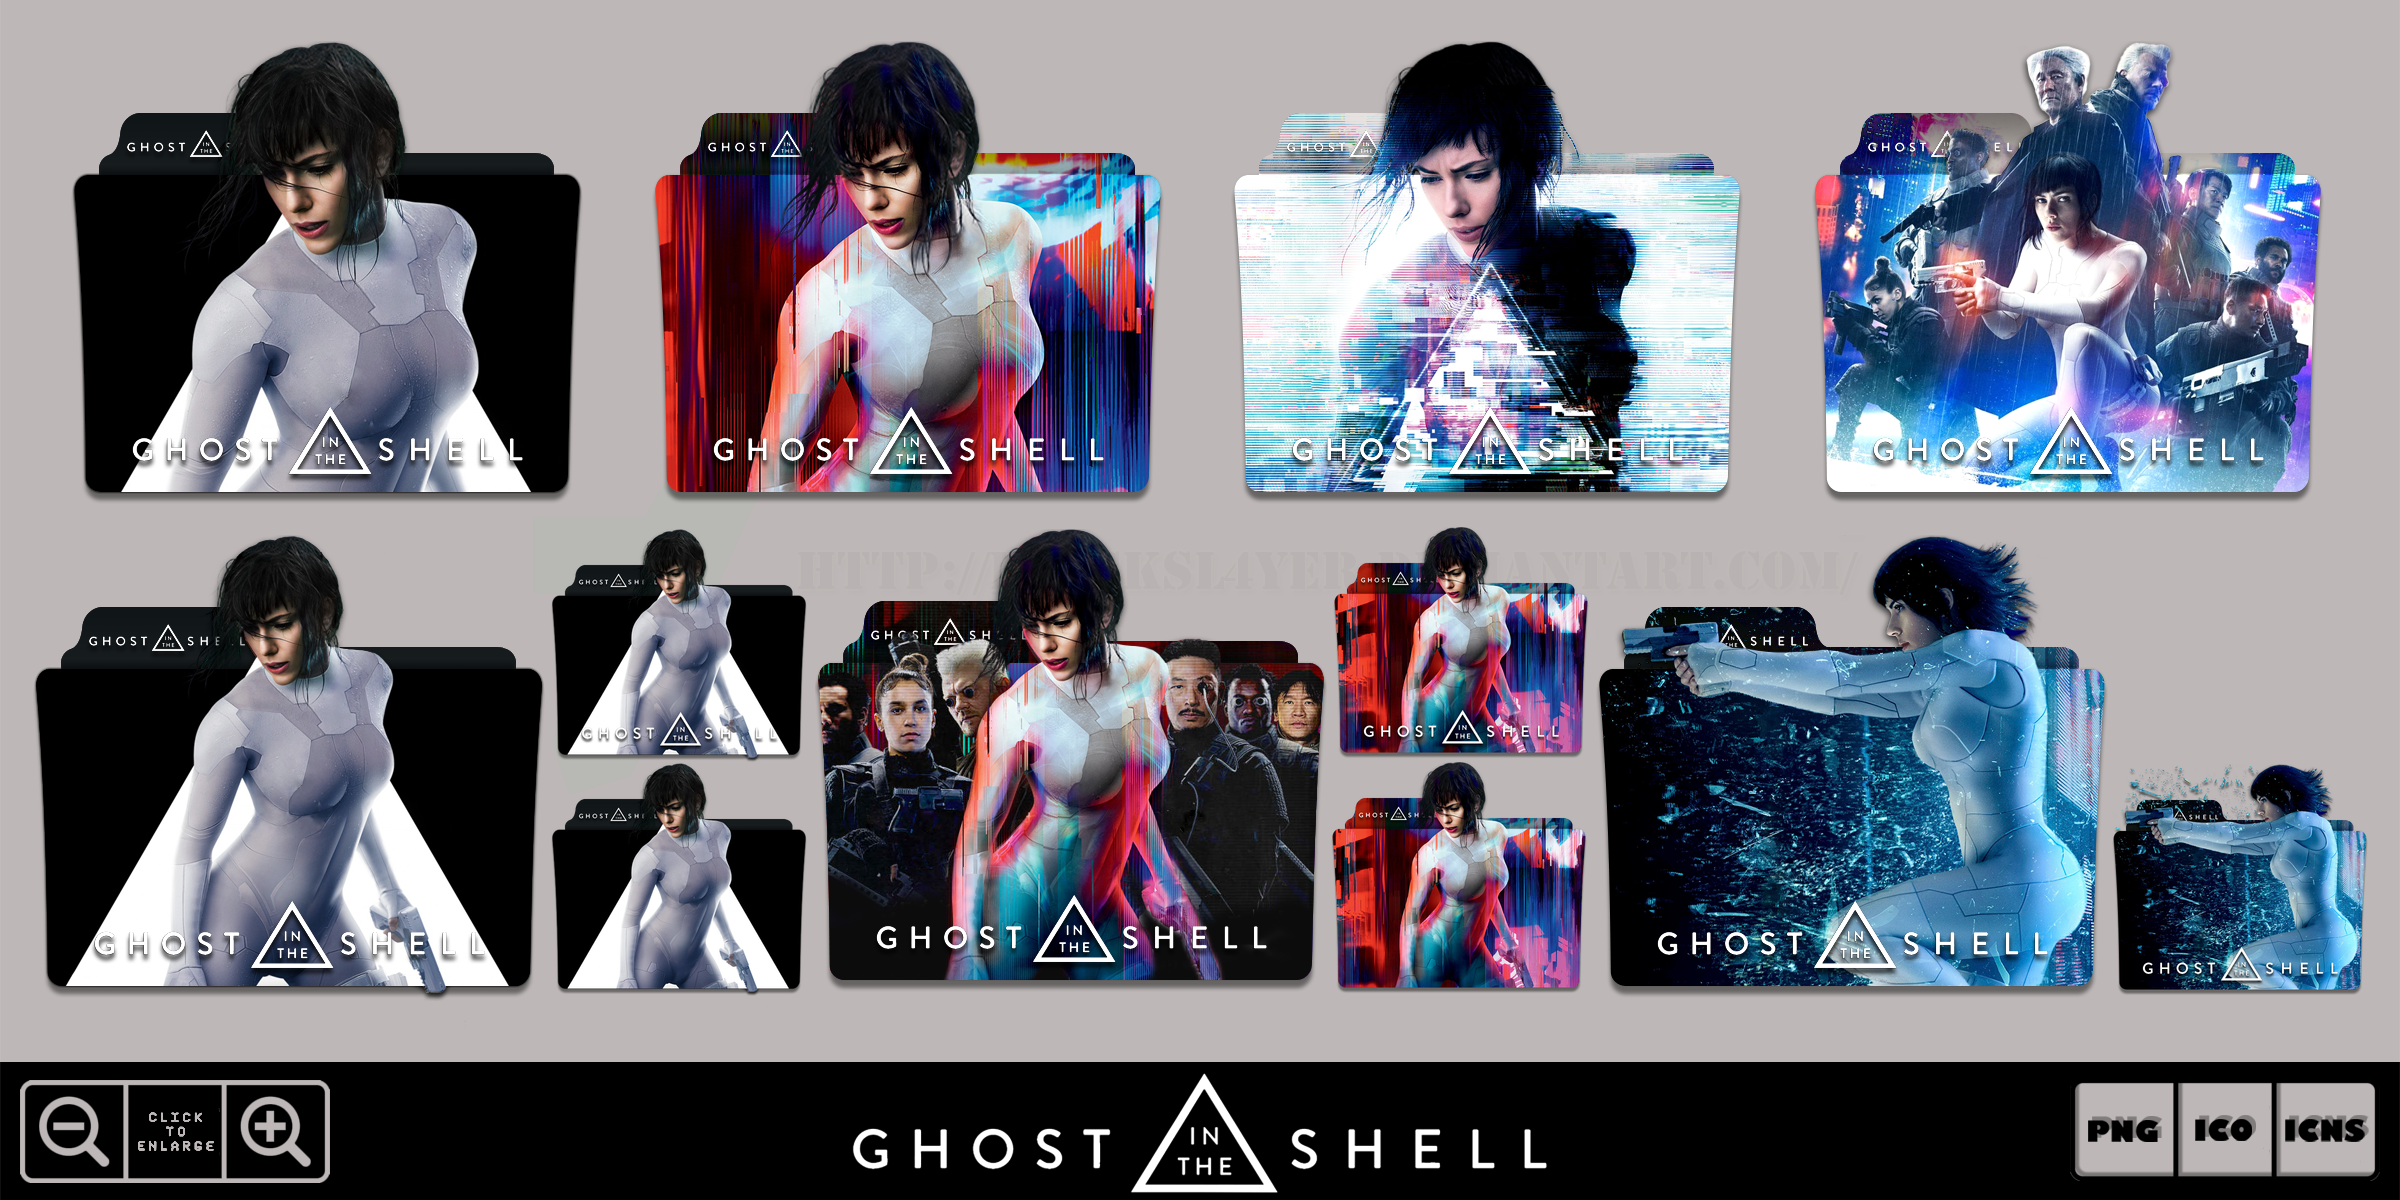 Ghost In The Shell 2017 Folder Icon Pack By Bl4cksl4yer On Deviantart